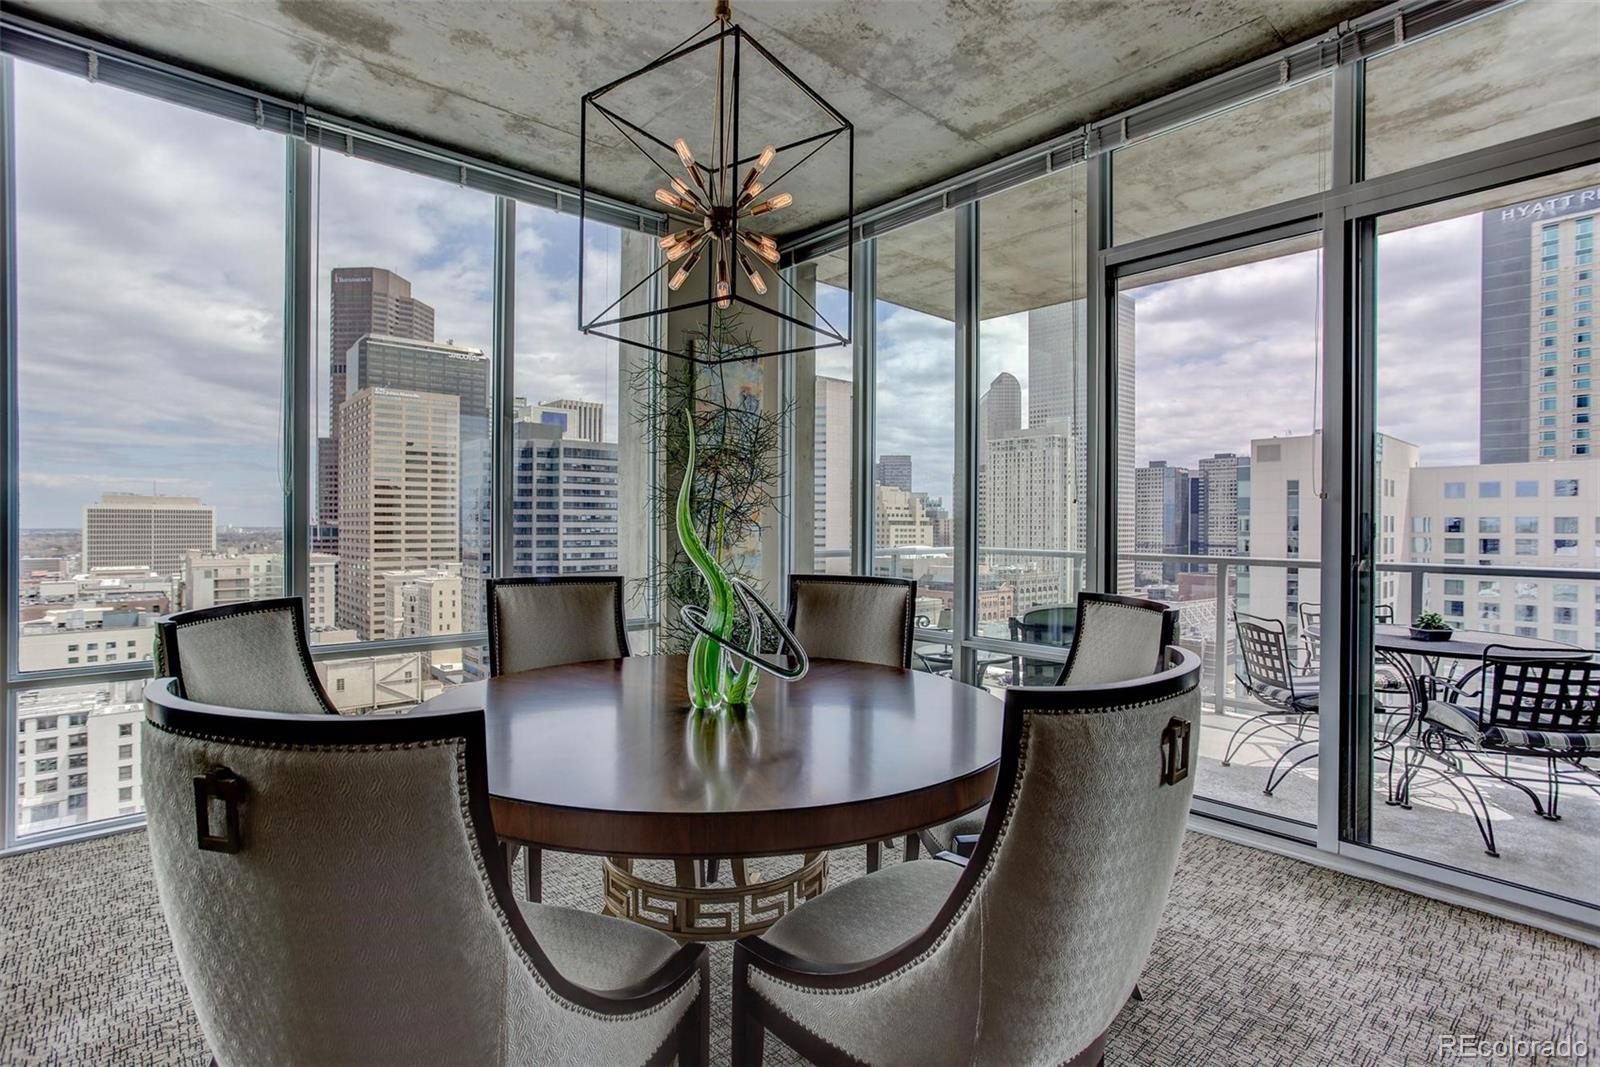 NO HOA DUES FOR A YEAR!! JAW-DROPPING DOWNTOWN VIEWS IN A CORNER HOME! This spacious 2-bedrooms/2.5-bathroom SPIRE condo has nearly 1,700 square feet of living space in a wide-open floor plan with floor-to-ceiling glass and lots of natural light. The oversized balcony will have you feeling like you are suspended in midair! This home offers plenty of privacy with 2 bedrooms on opposite ends of the home, each with a dedicated full bathroom. Cook's kitchen with slab granite countertops, stainless steel appliances, tons of workspace and cabinets galore! Retreat to the master suite with incredible views, a 5-piece master bathroom with frameless shower and dual sinks, and a walk-in master closet with beautiful custom cabinets. The guest bedroom maximizes space with a built-in desk and a murphy bed, all crafted from warm woods. Also included: 1 parking space & two storage spaces in the attached garage. 2nd parking available for purchase. The 42-story SPIRE, with its legendary views, is LEED-certified, with 40,000 square feet of awesome amenities, including a rooftop pool which is heated & open year-round, hot-tub, extensive health club, The Zone multimedia lounge, the Box Office multimedia theater, garage dog park, outdoor grilling area, 10th floor private event lounge, 24-hour courtesy desk, fully-furnished SPIRE guest suites, electric vehicle chargers, and modern access control systems. SPIRE has great internet service now and super-fast service coming soon--1 gig dedicated to each condo. SPIRE is in the heart of it all. Conveniently located at 14th Street & Champa Street, you can stroll or grab the free shuttle to Larimer Street restaurants, downtown's night life, the Colorado Convention Center, Denver Center for the Performing Arts, Denver Pavilions, Whole Foods Market, the emergent Union Station neighborhood and the A-Line train to Denver International Airport.  Come home to Downtown Denver's SPIRE -- life is better here!  Available for a quick closing.